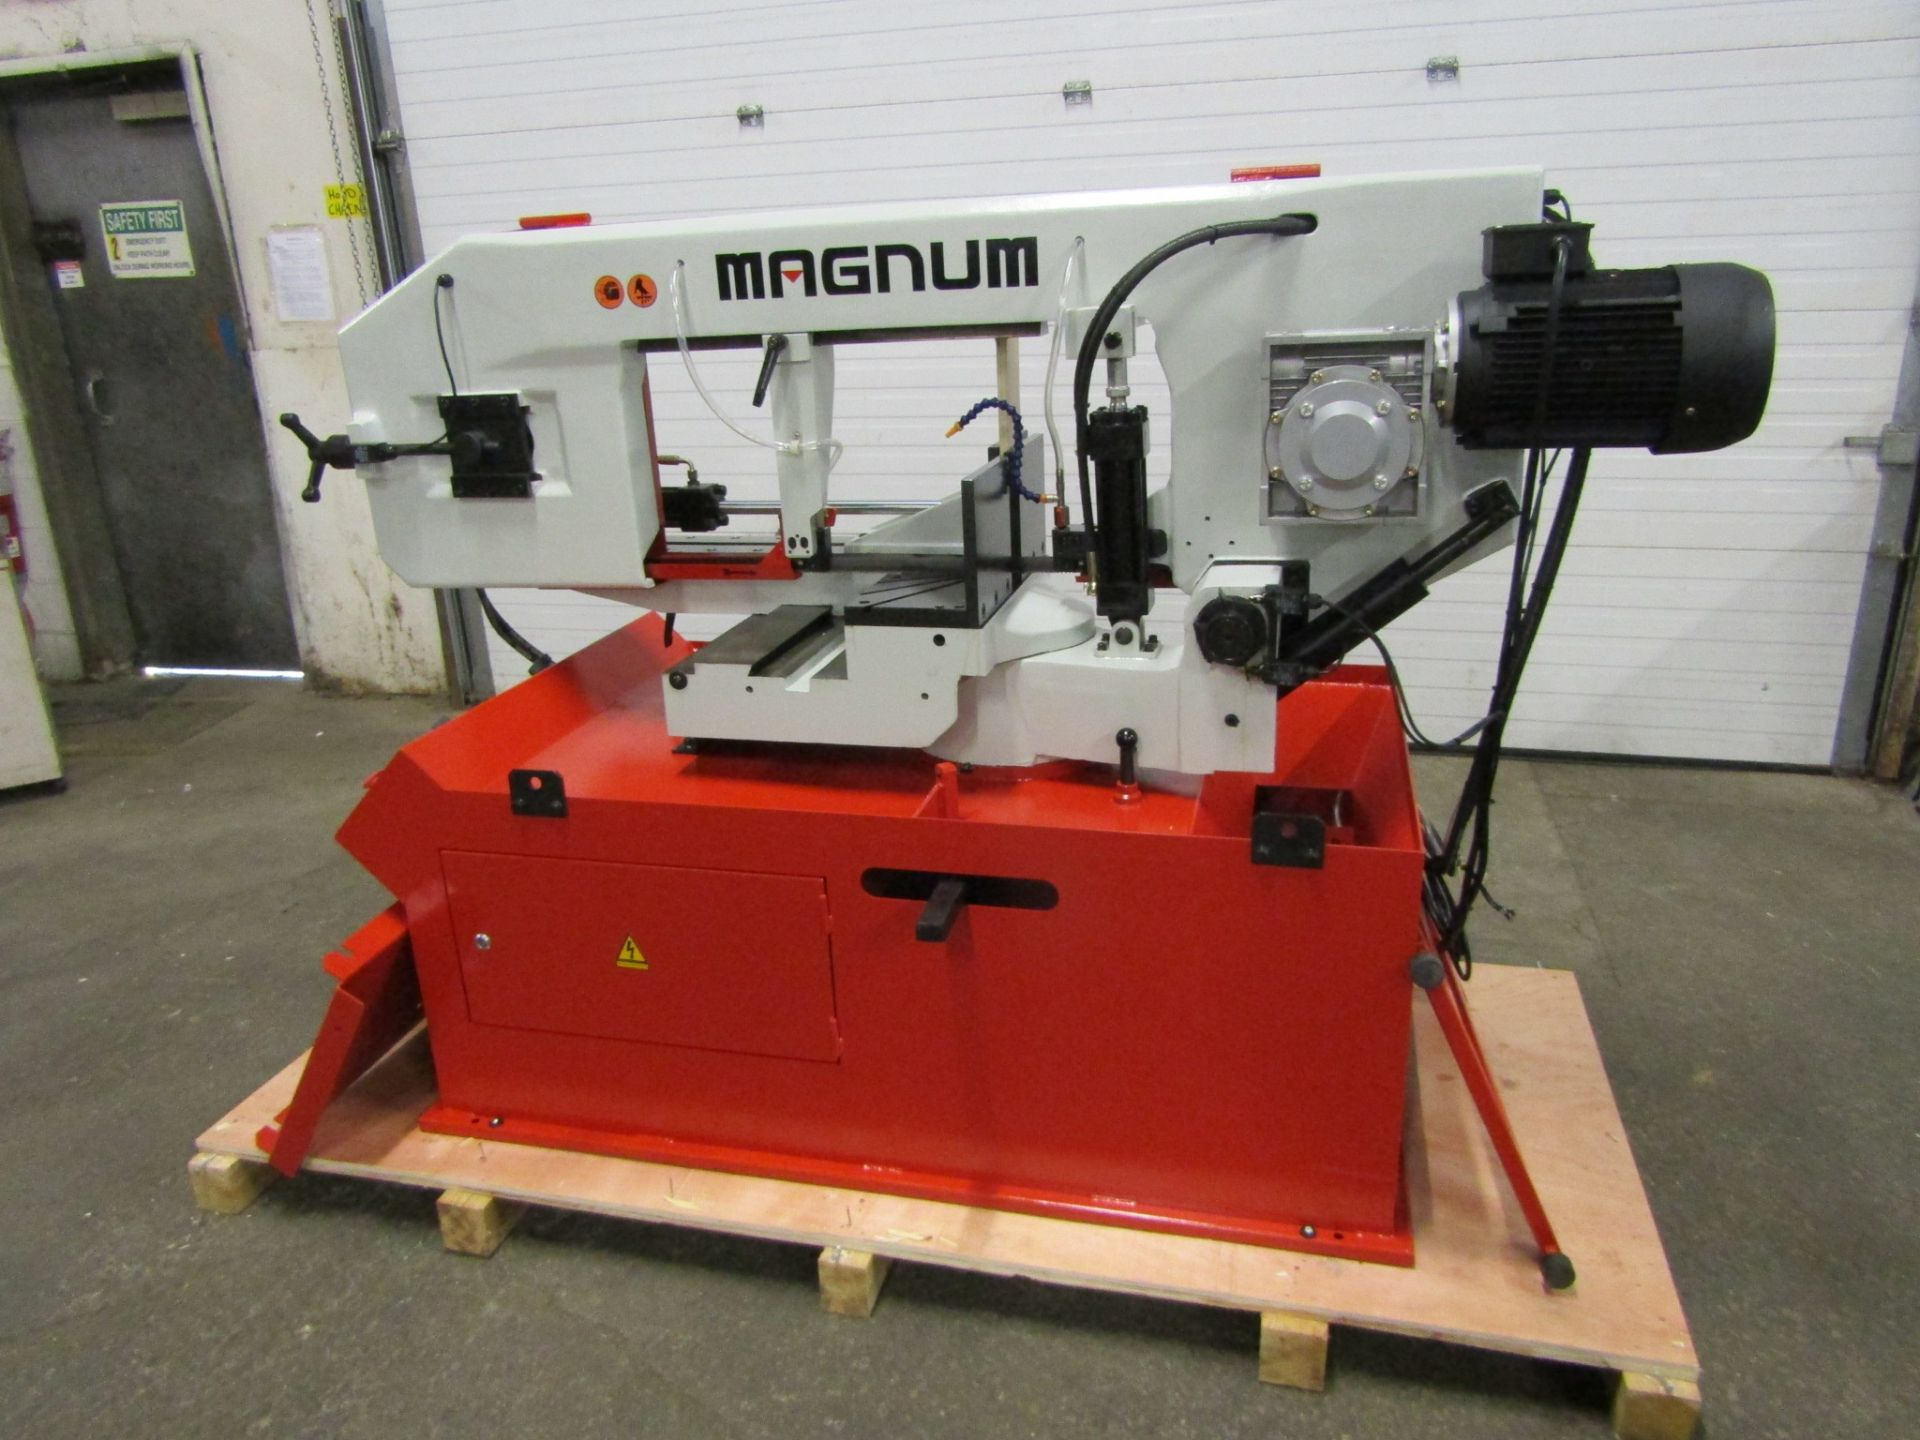 Magnum BSM-1813 Mitering Horizontal Band Saw - 18 X 13 inch CUTTING CAPACITY - CNC capability with